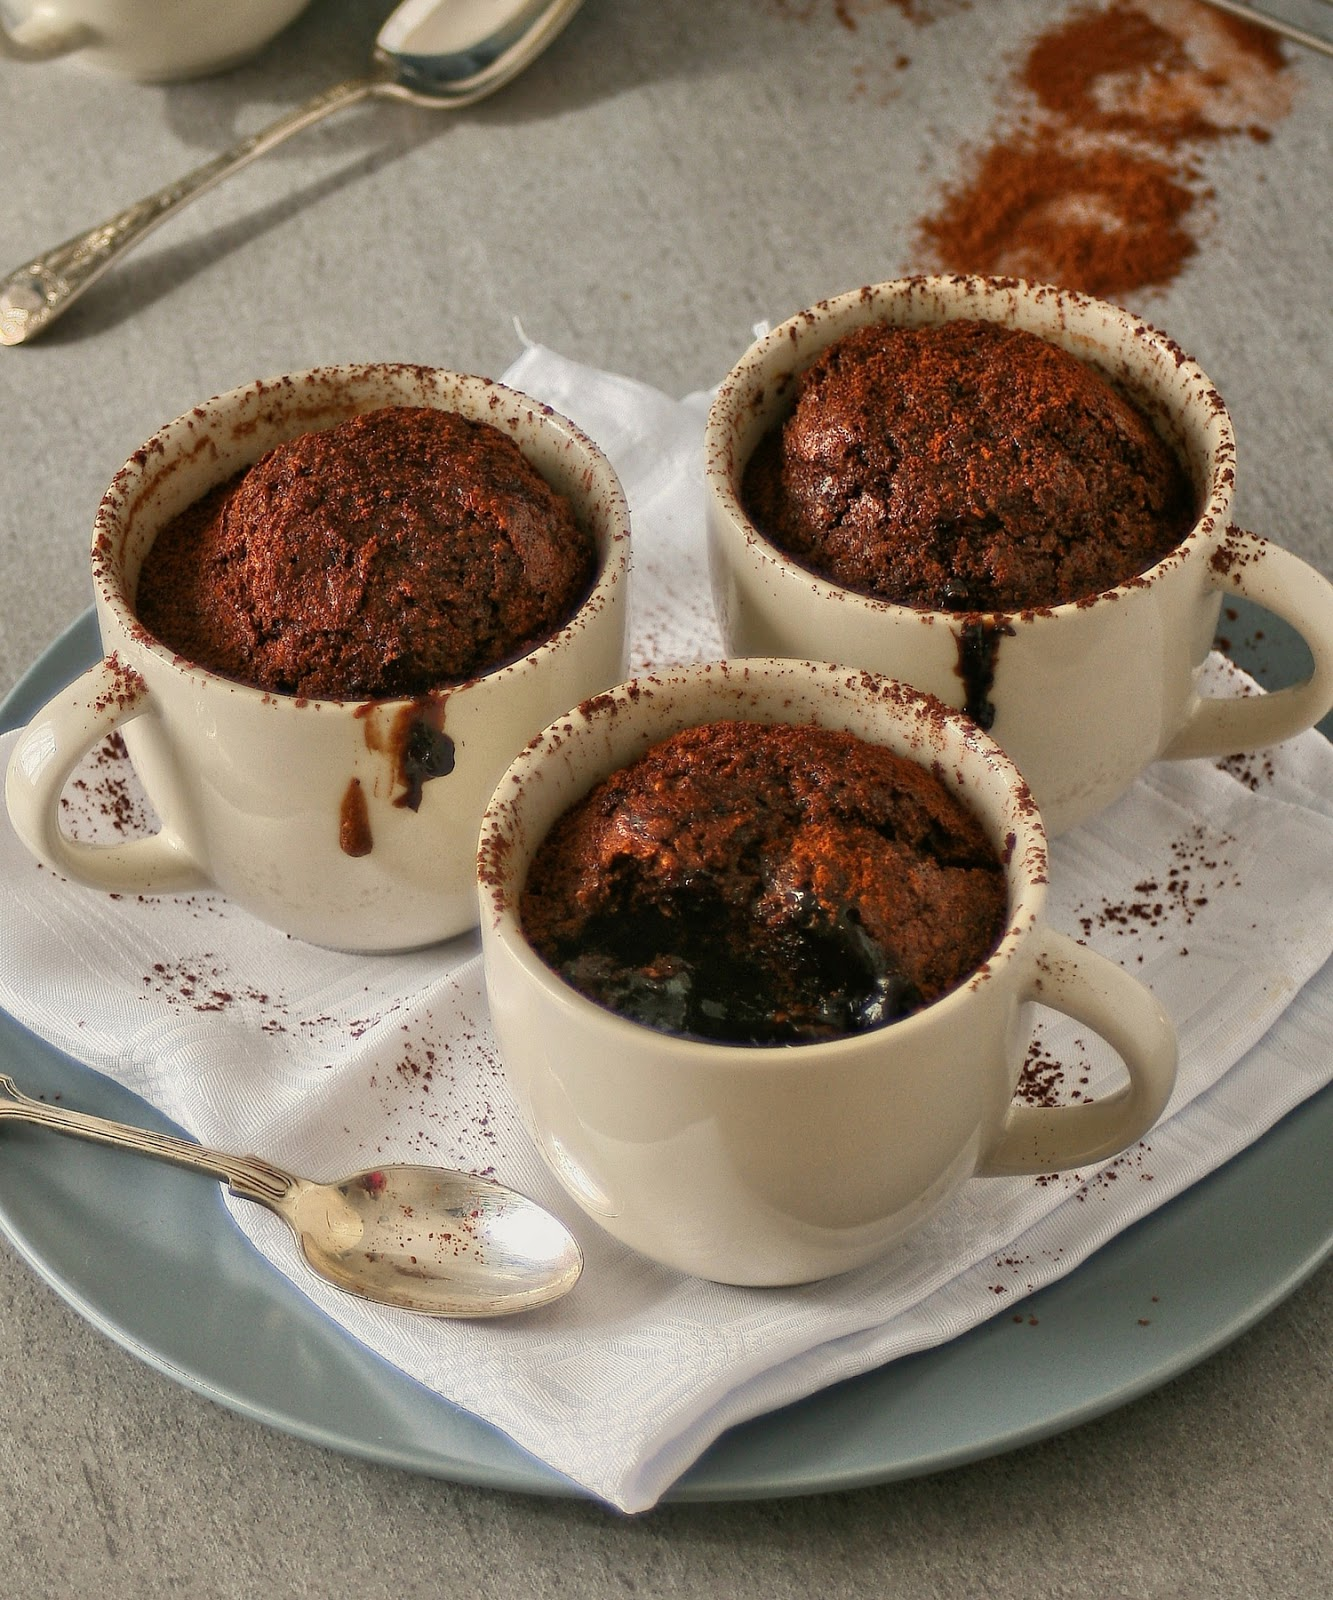 Baked saucy chocolate and coconut puddings.